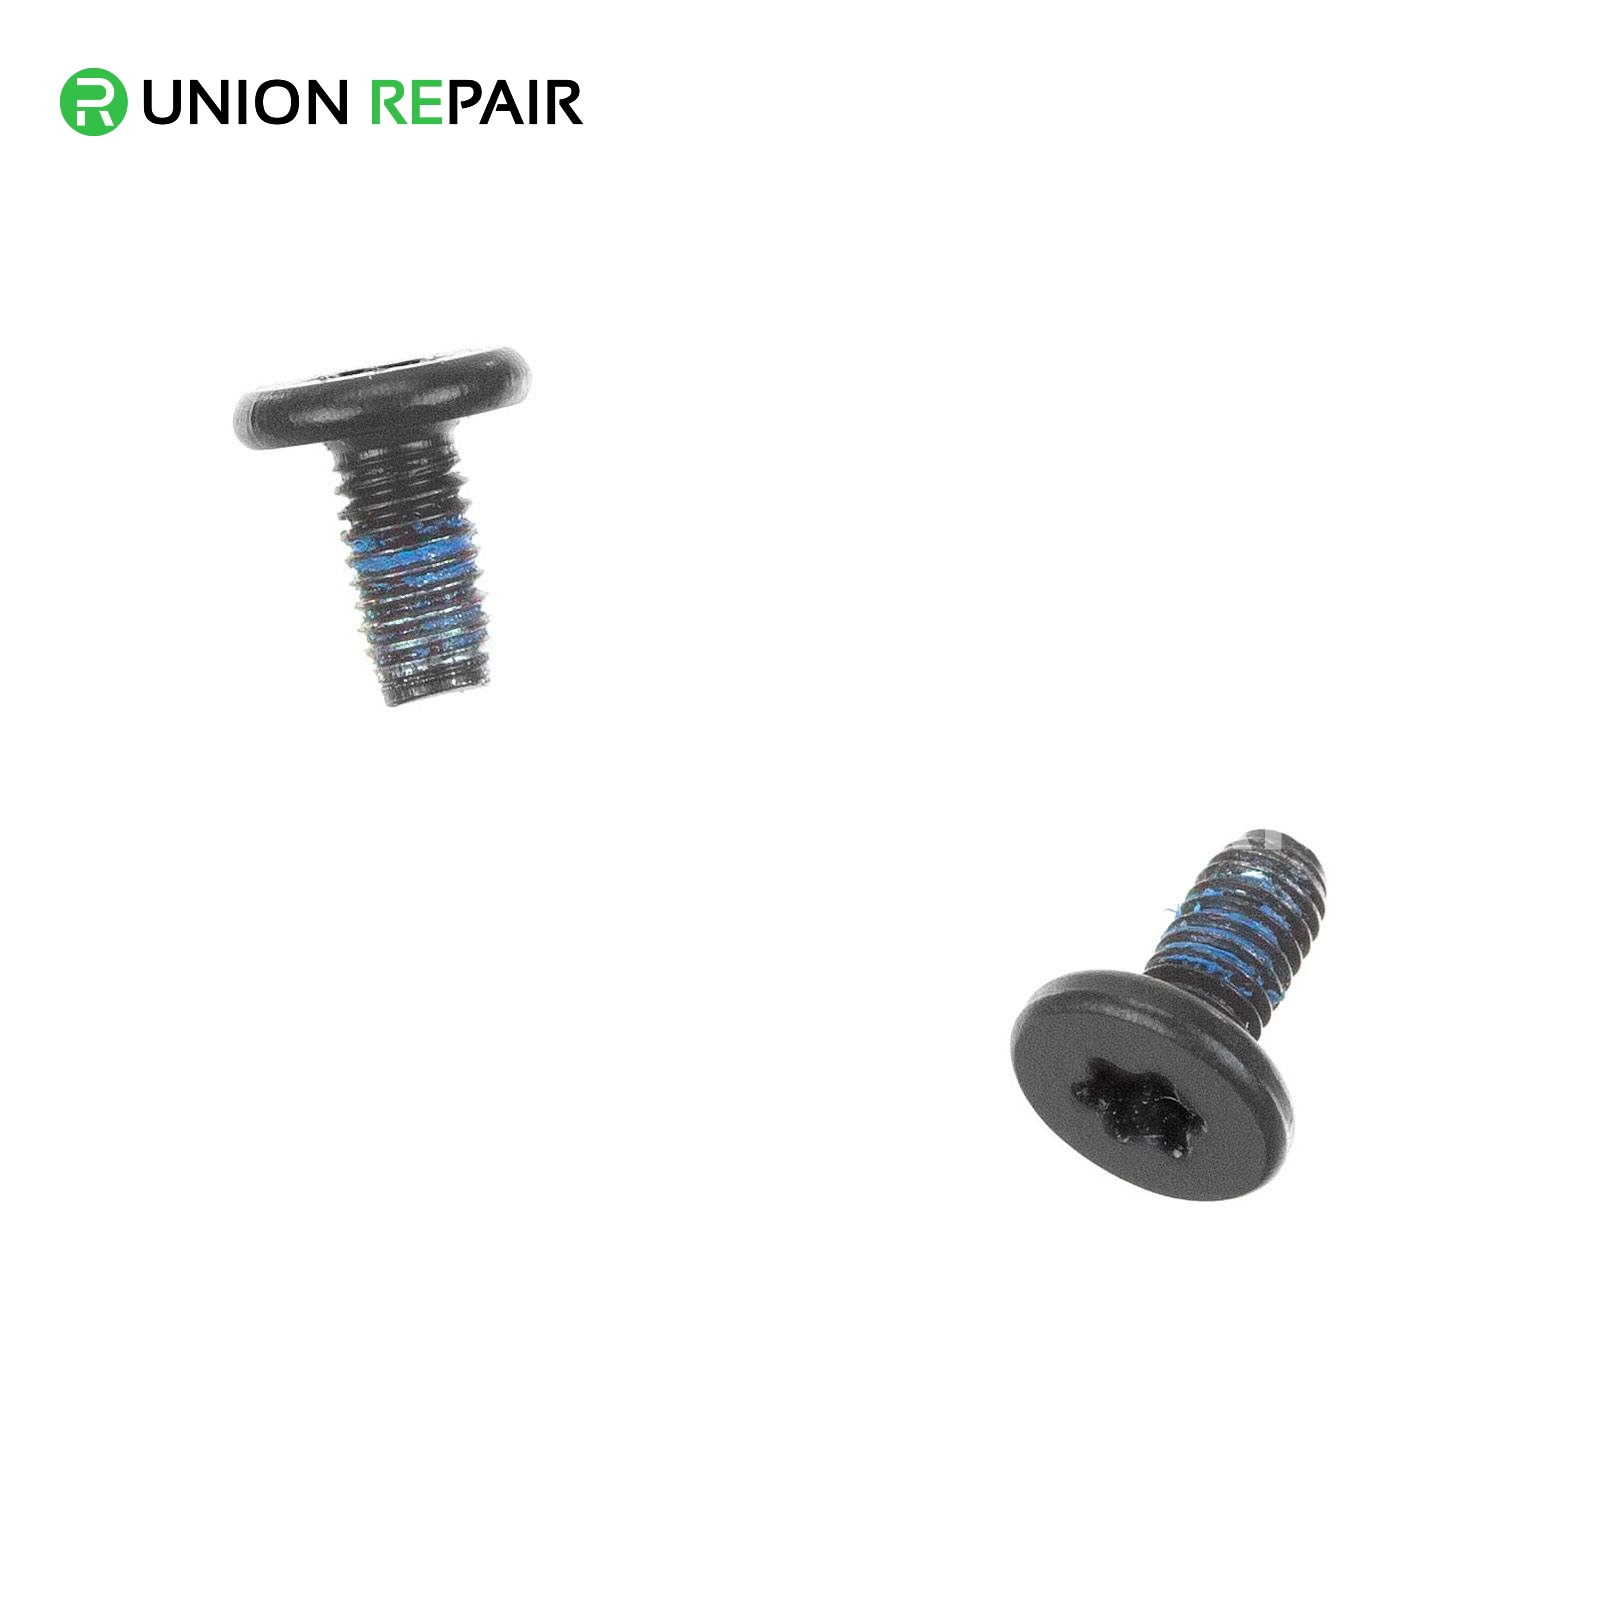 """T10 Hard Drive Mount Screws (Left) for iMac 27"""" A1419 (Late 2012,Late 2013)"""